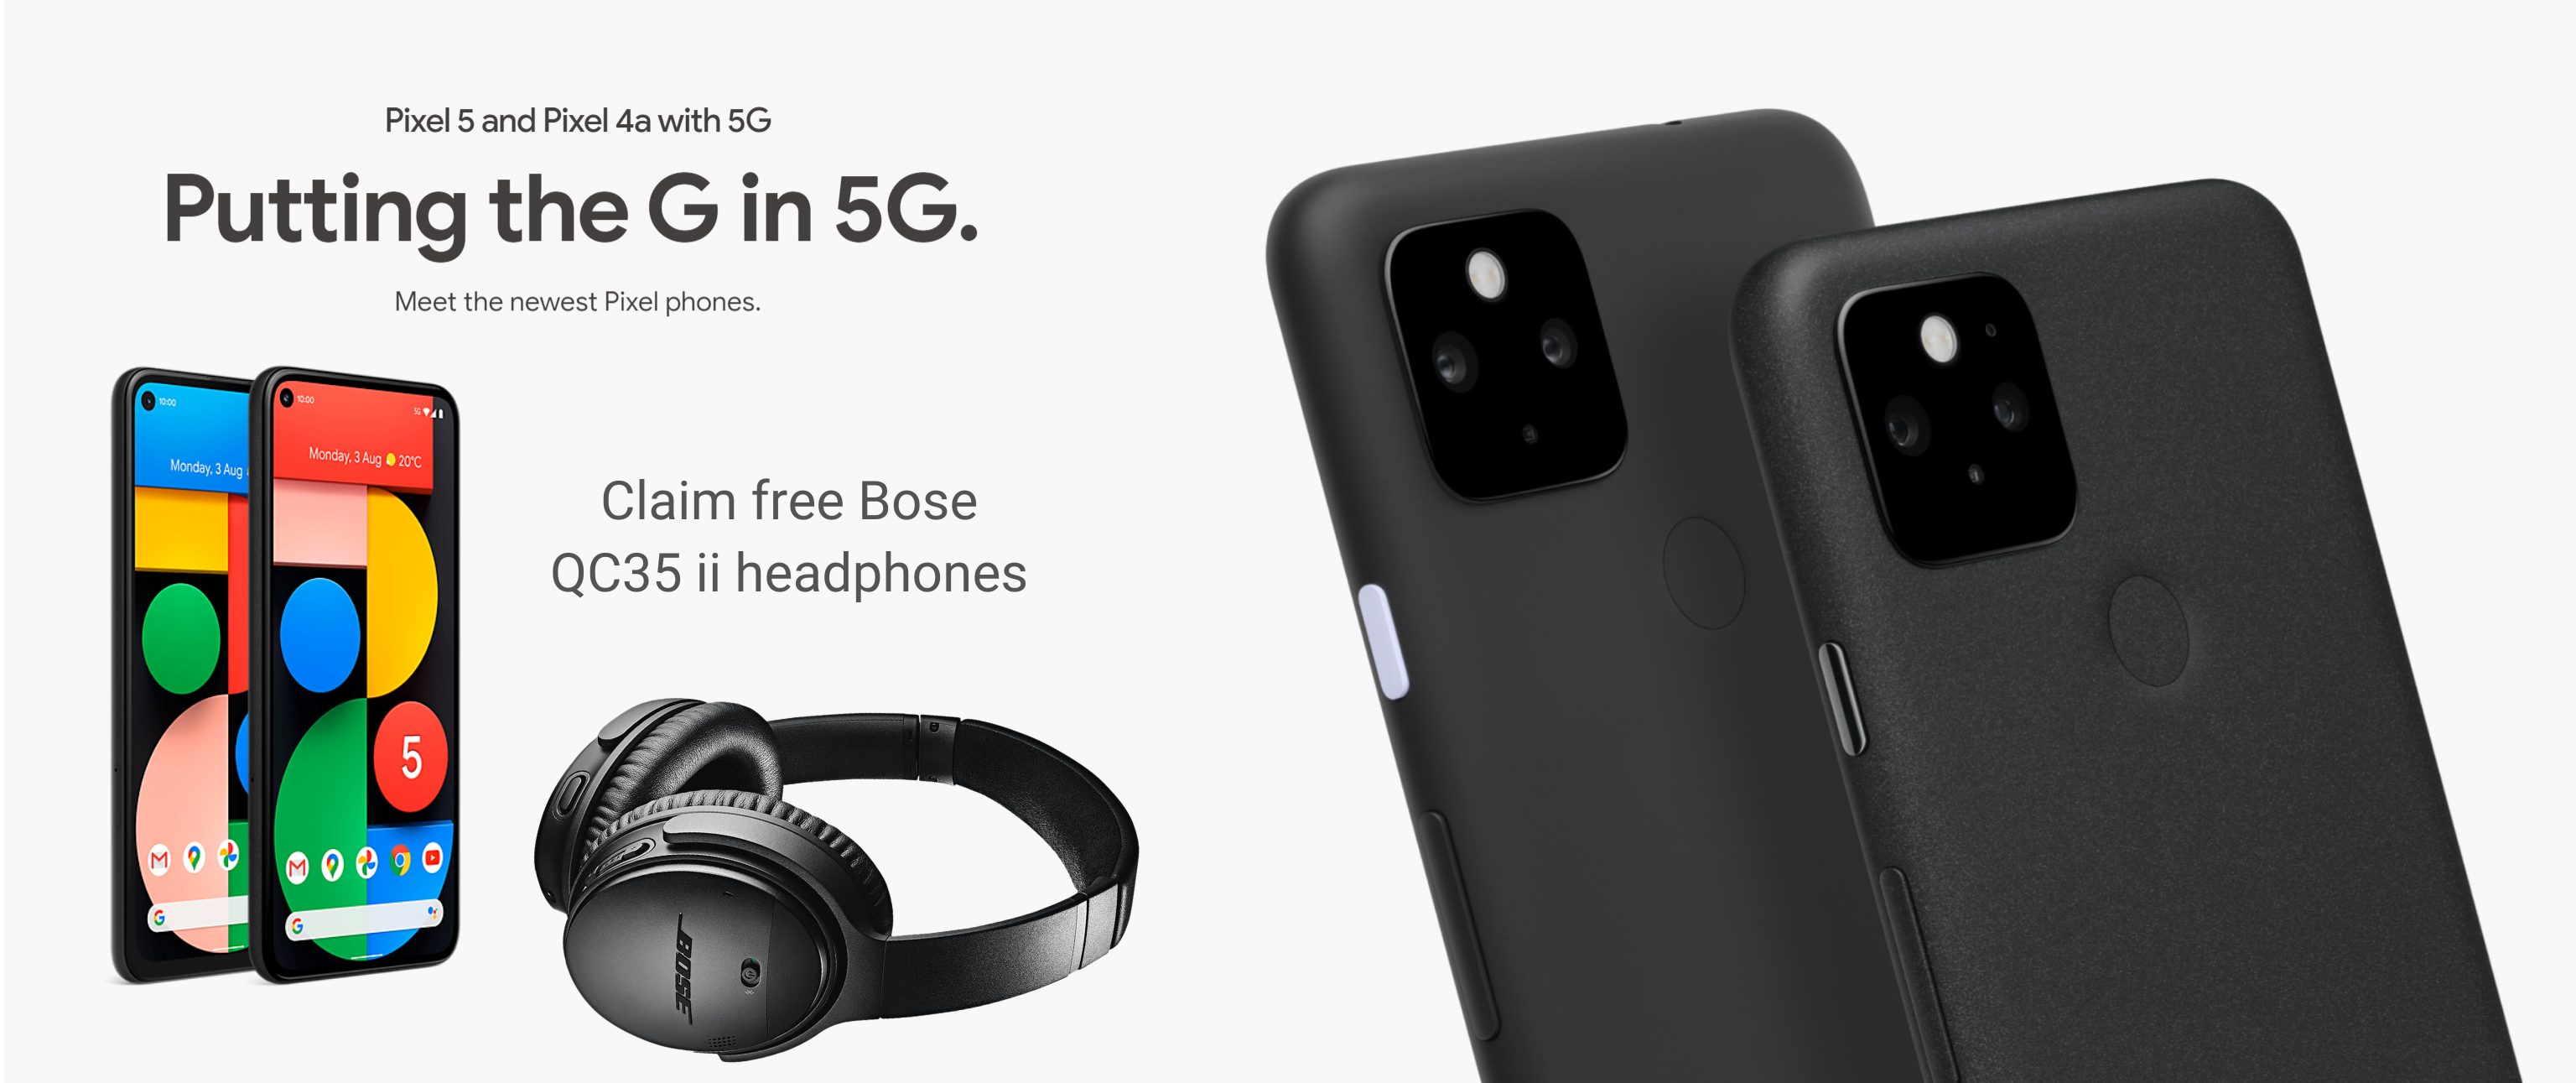 Claim free Bose headphones with Google Pixel 5 5G and 4A 5G deals